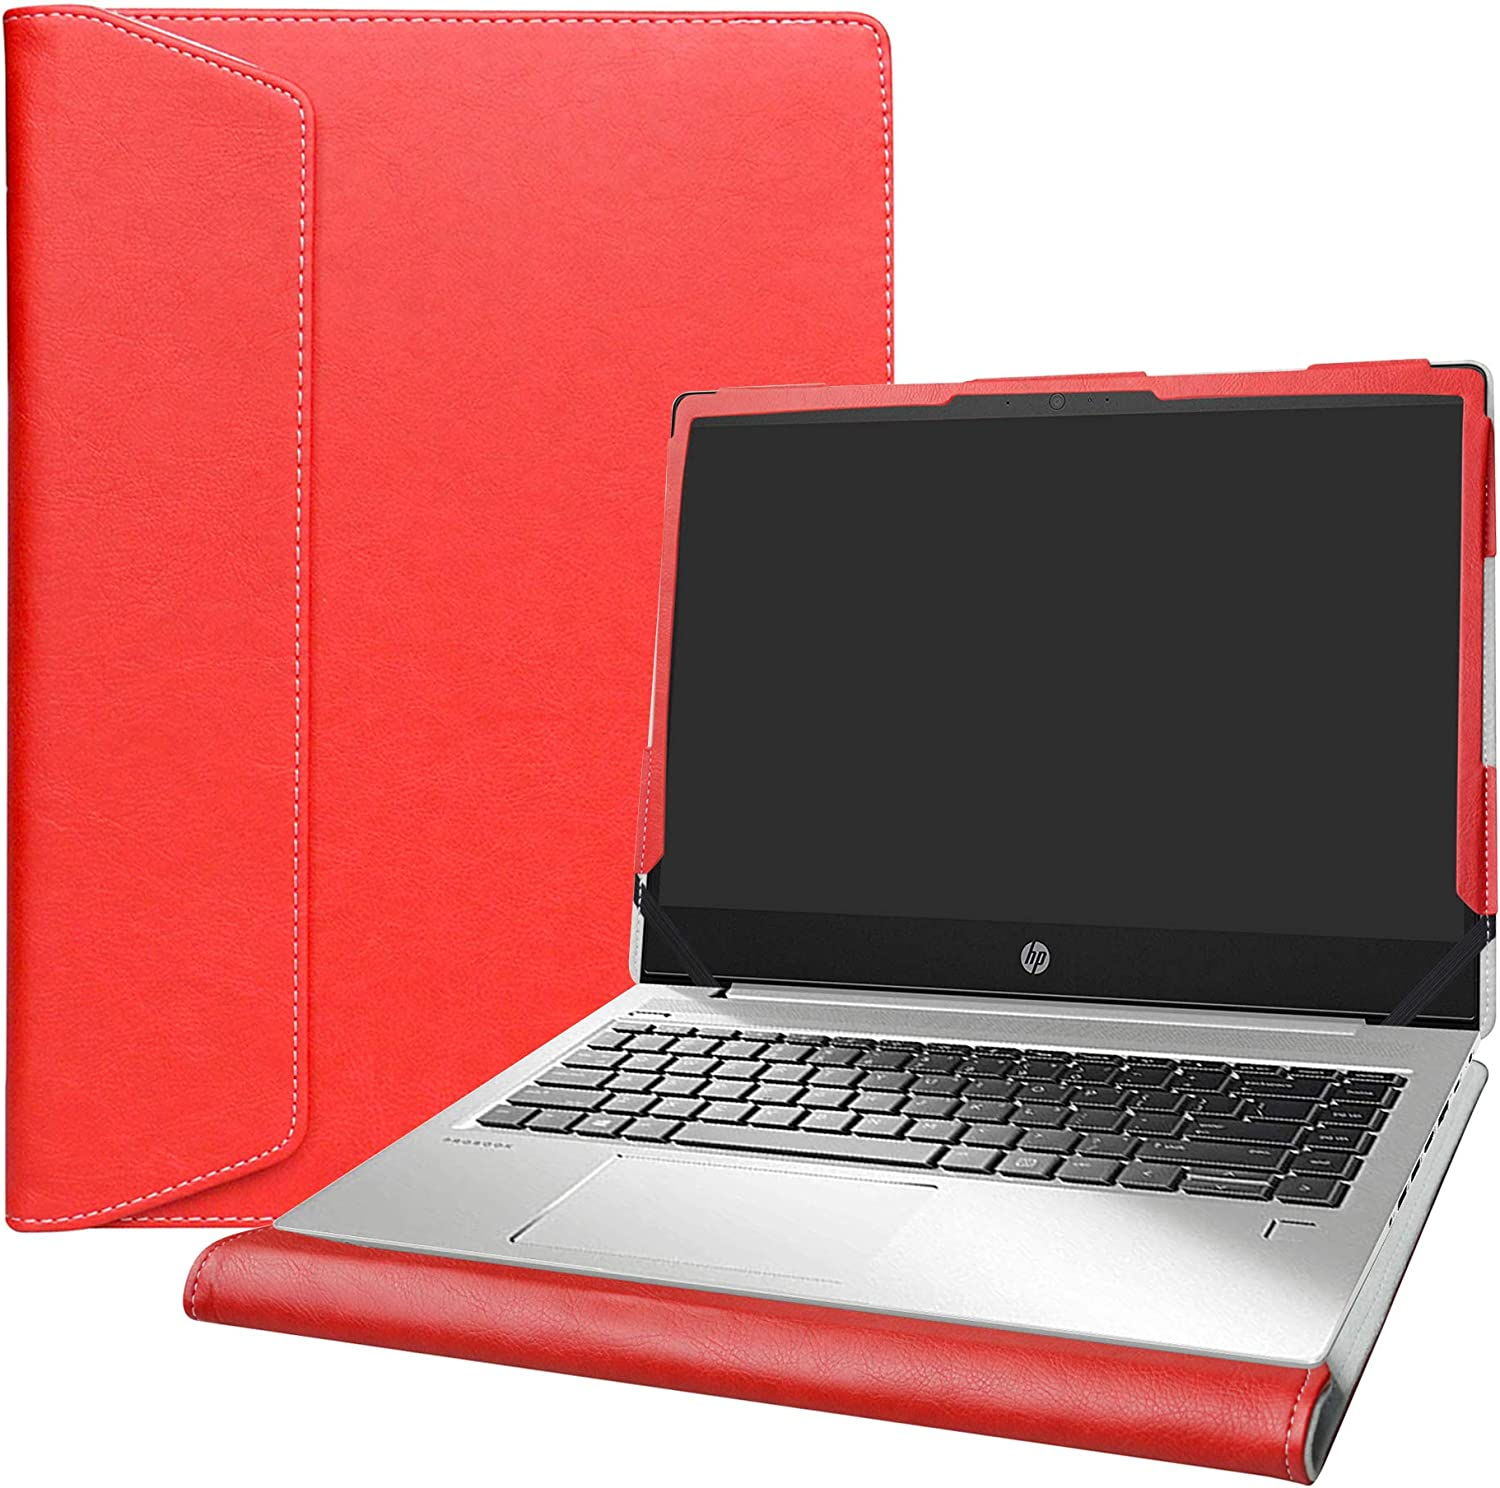 """Alapmk Protective Case Cover for 14"""" HP ProBook 440 G6/HP ProBook 440 G7/HP ProBook 445 G6/HP ProBook 445R G6/HP ProBook 445 G7 Laptop[Note:Not fit ProBook 440 G5 G4 G3 G2],Red"""